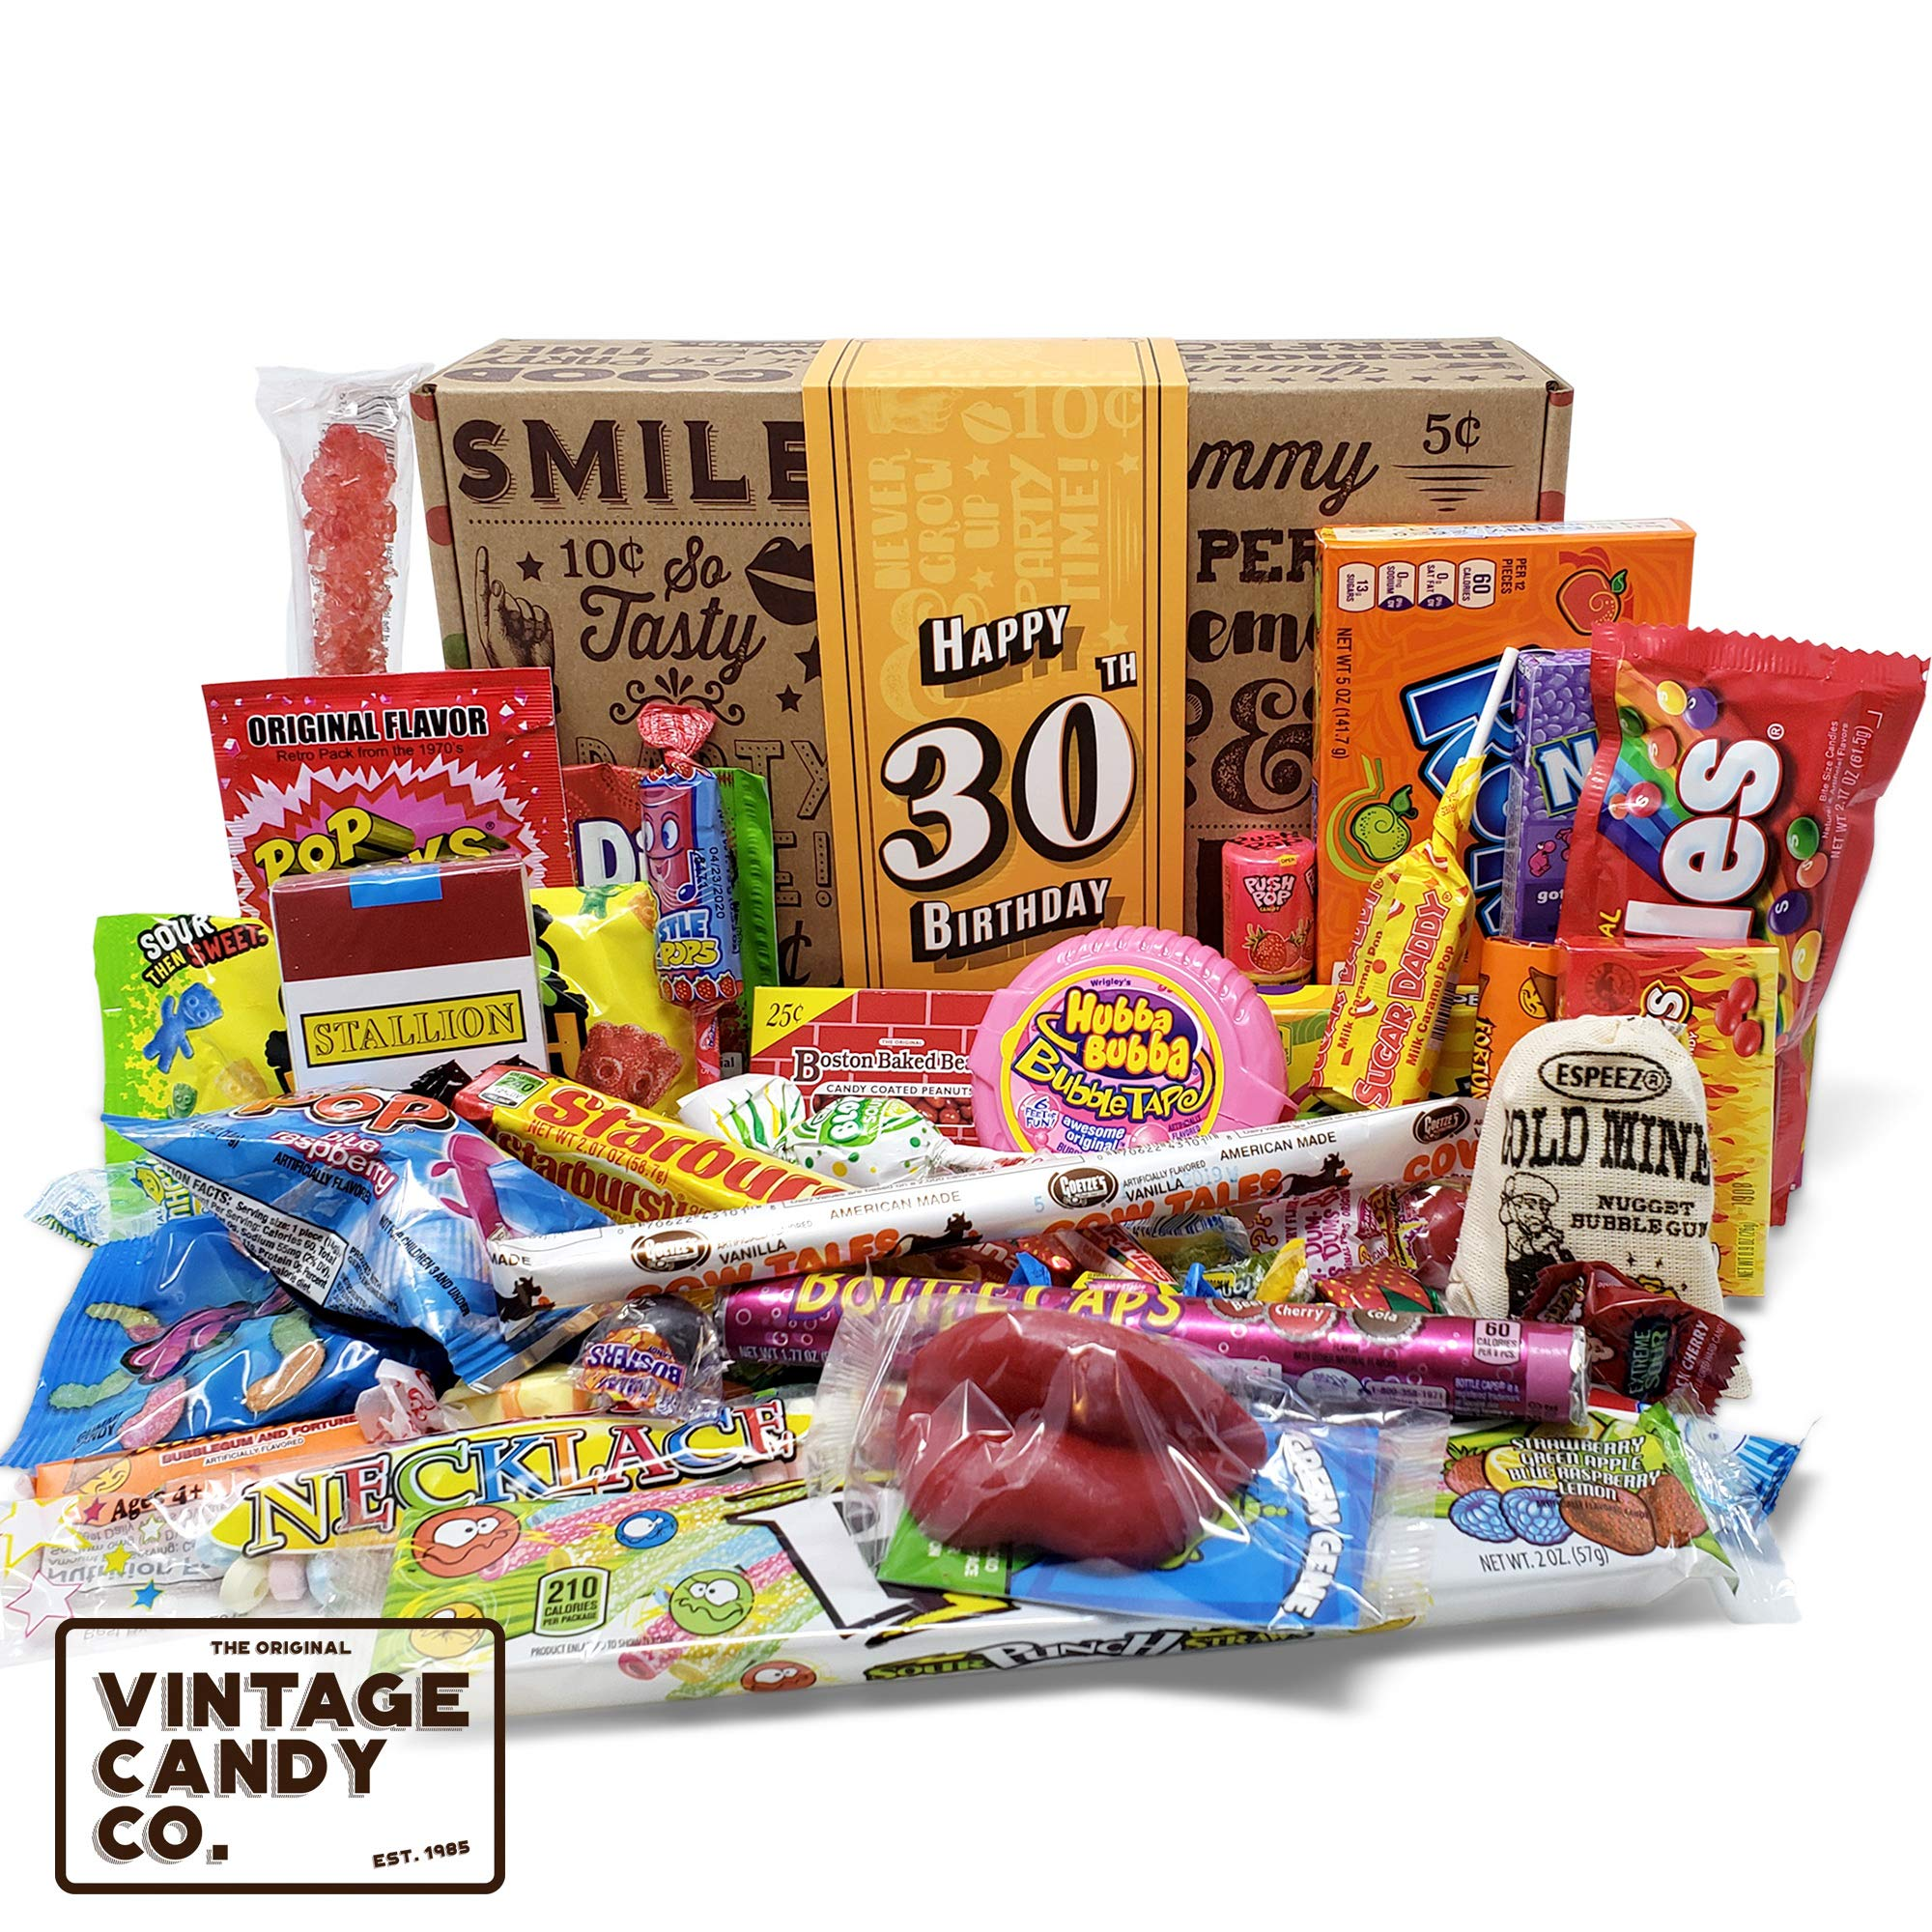 VINTAGE CANDY CO. 30TH BIRTHDAY RETRO CANDY GIFT BOX - 1989 Decade Childhood Nostalgic Candies - Fun Funny Gag Gift Basket - Milestone 30 THIRTIETH Birthday - PERFECT For Man Or Woman Turning THIRTY by Vintage Candy Co.